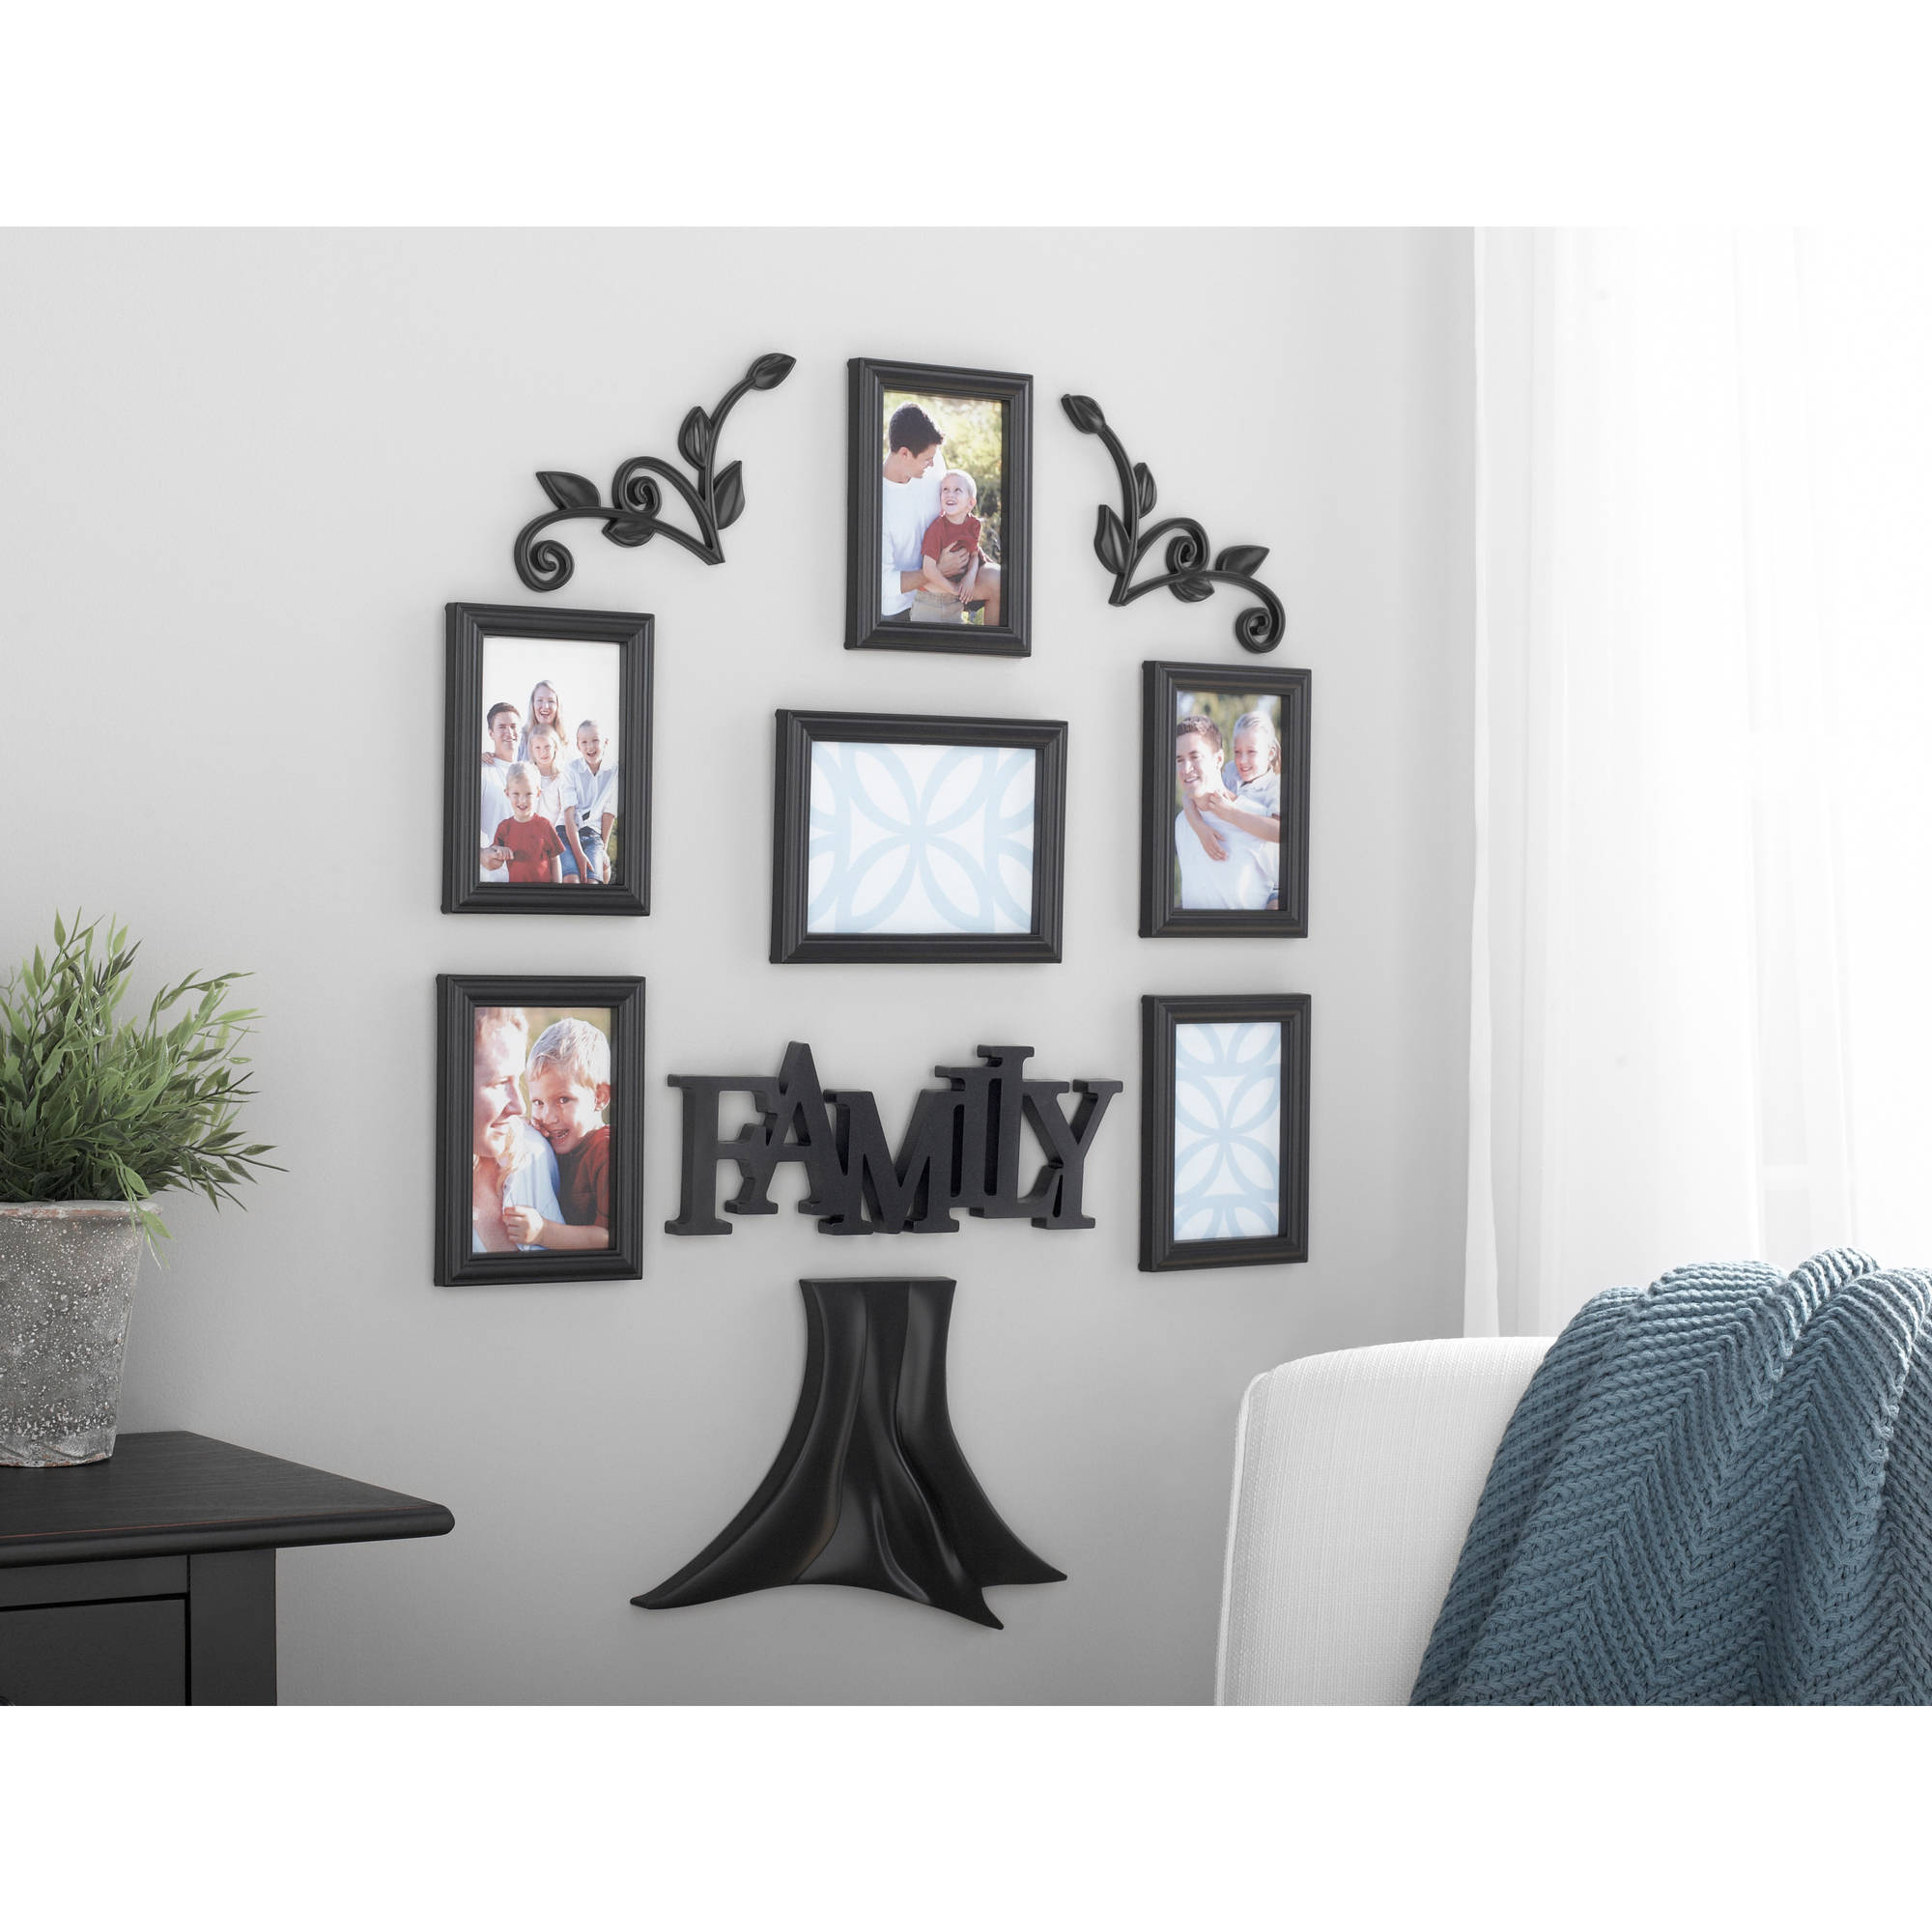 Family Tree Wall Frame Set | Sevenstonesinc.com